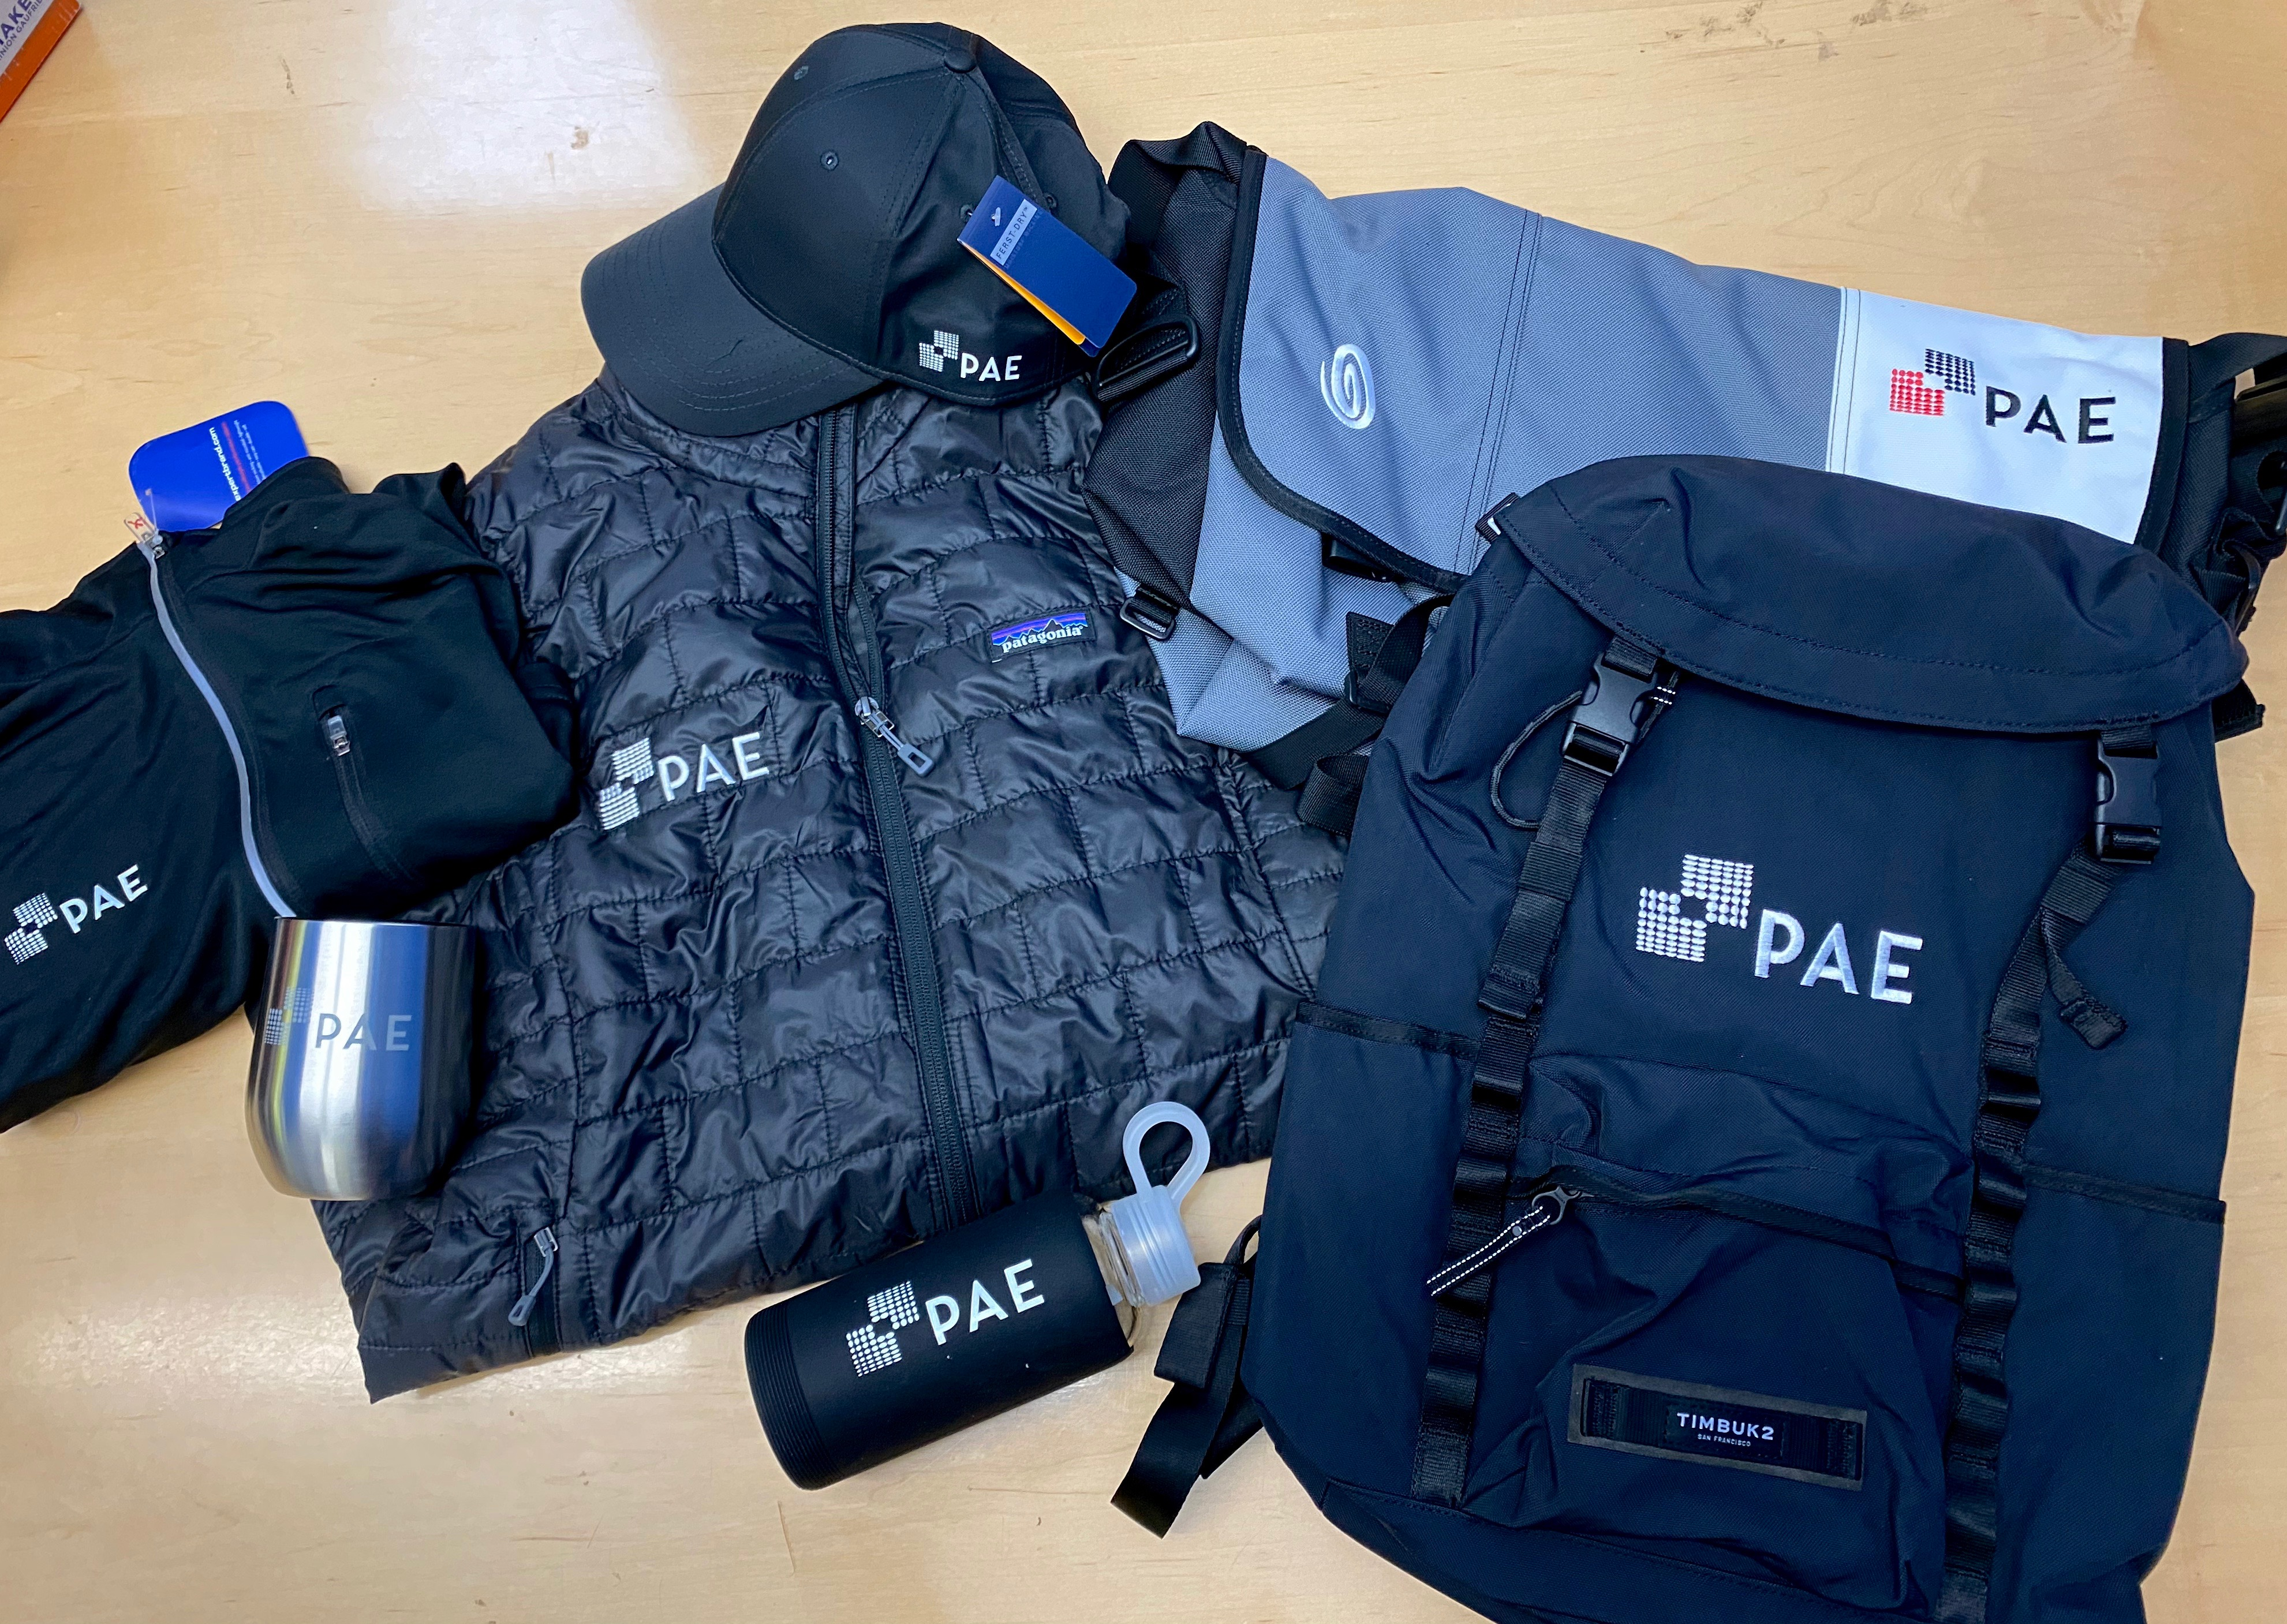 PAE Promotional Items